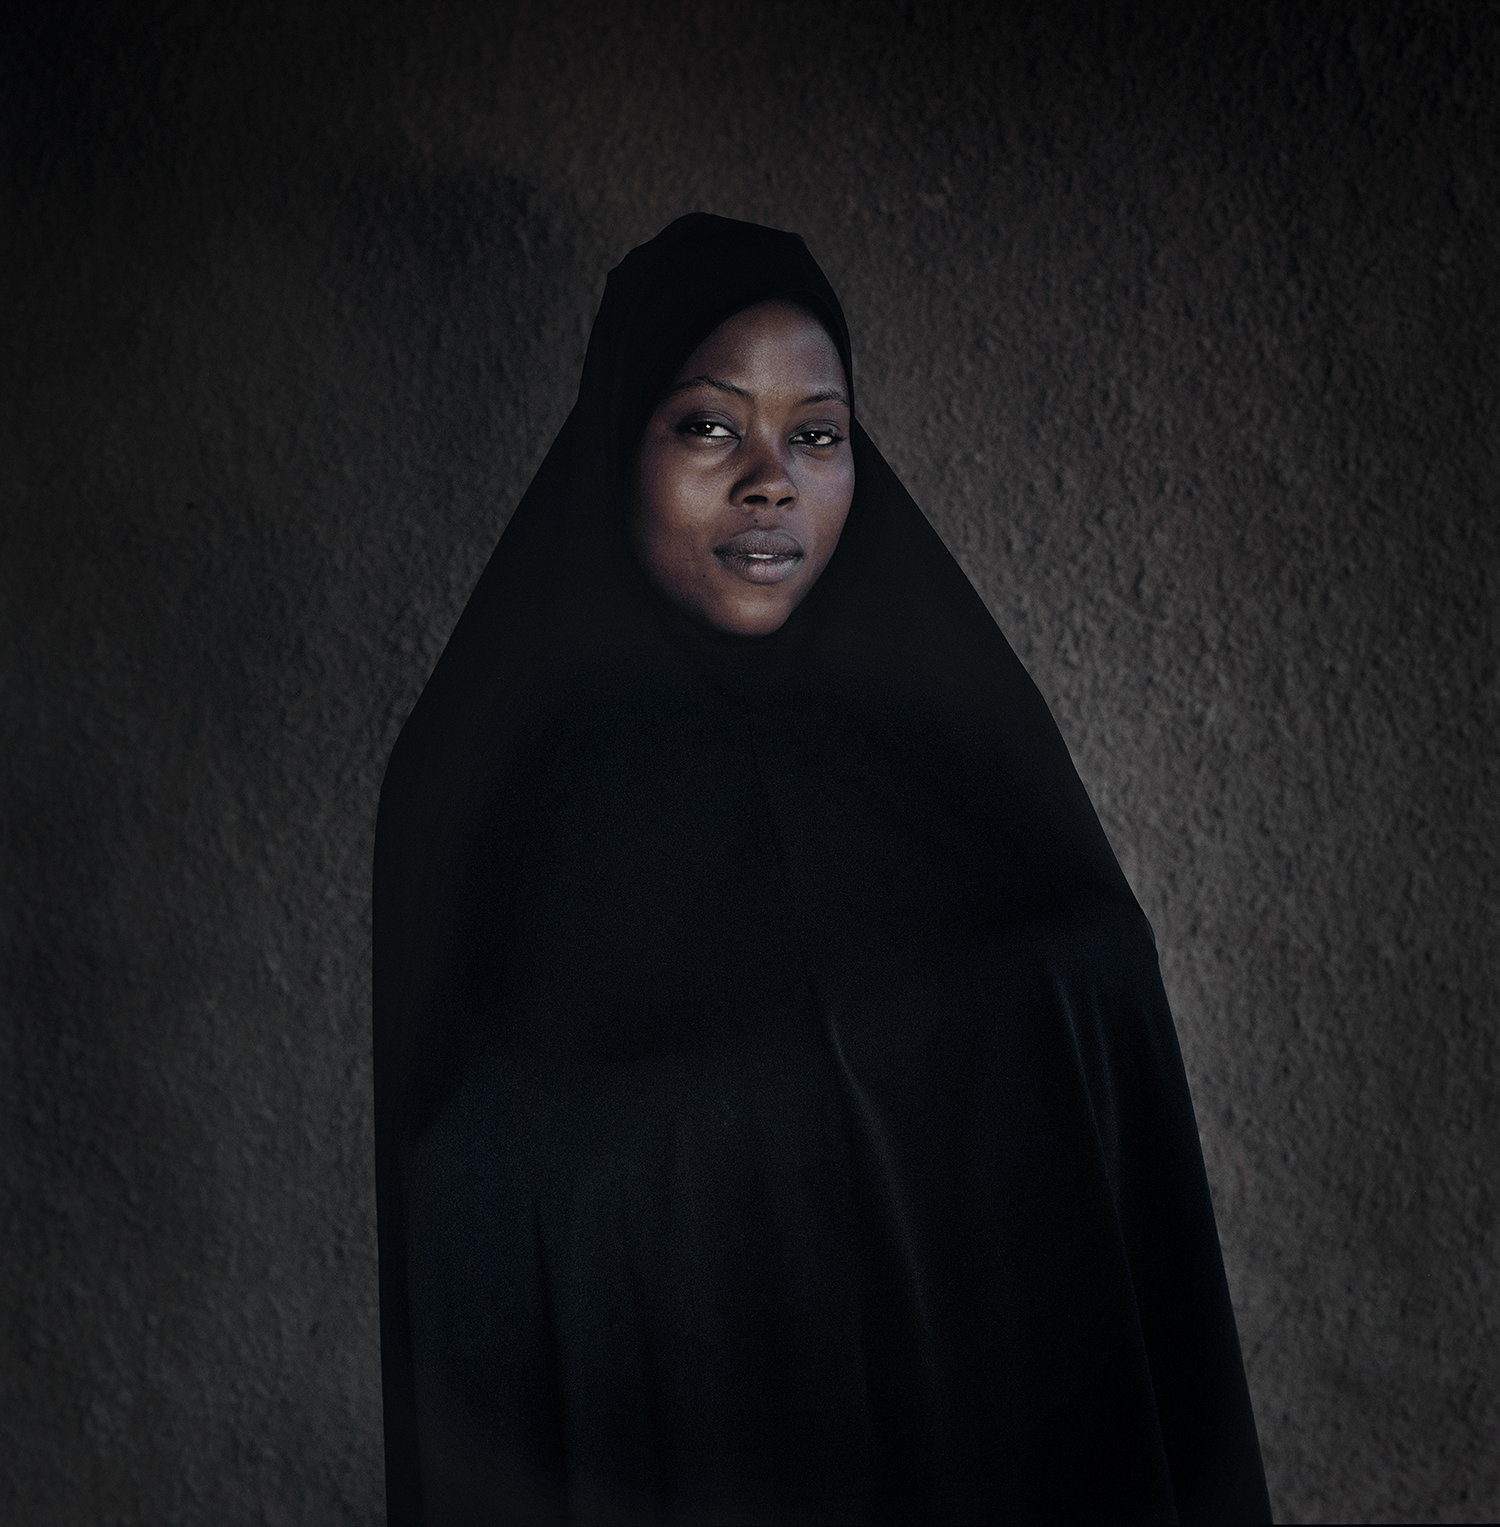 Child_Marriage_Niger_010.jpg